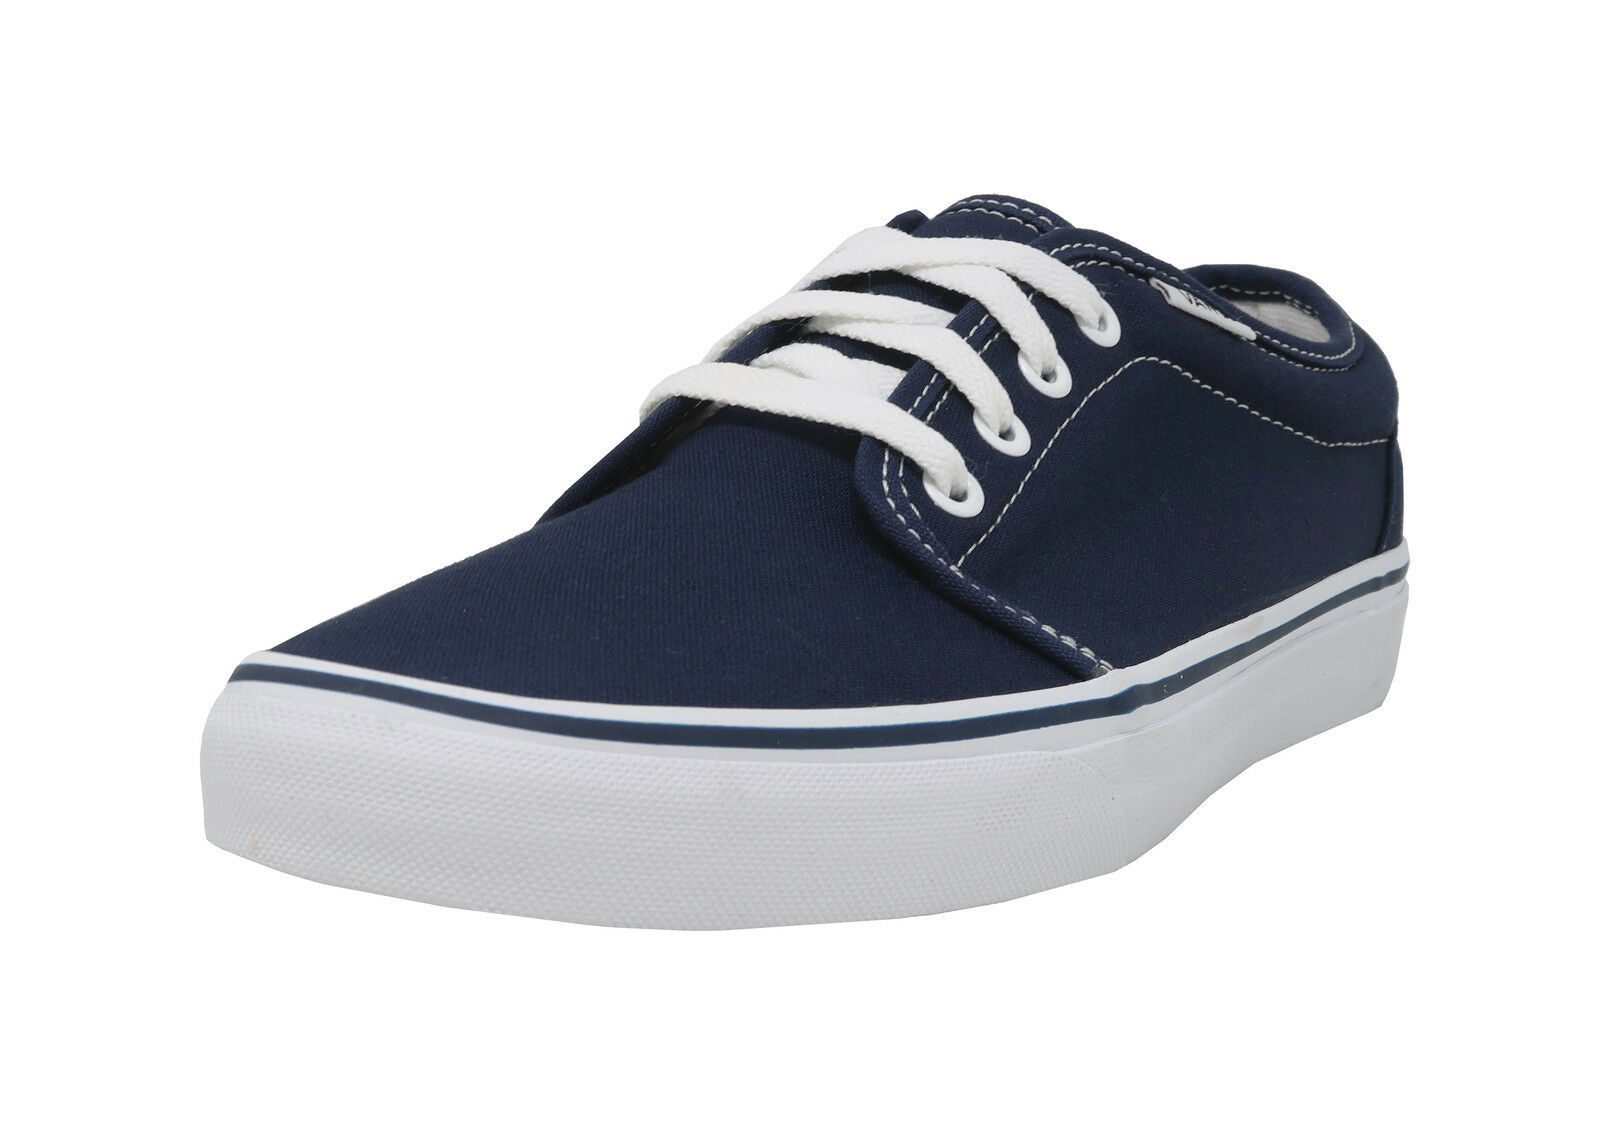 VANS 106 Vulcanized Navy Bleu Blanc Lace Up Sneakers Fashion Homme Chaussures